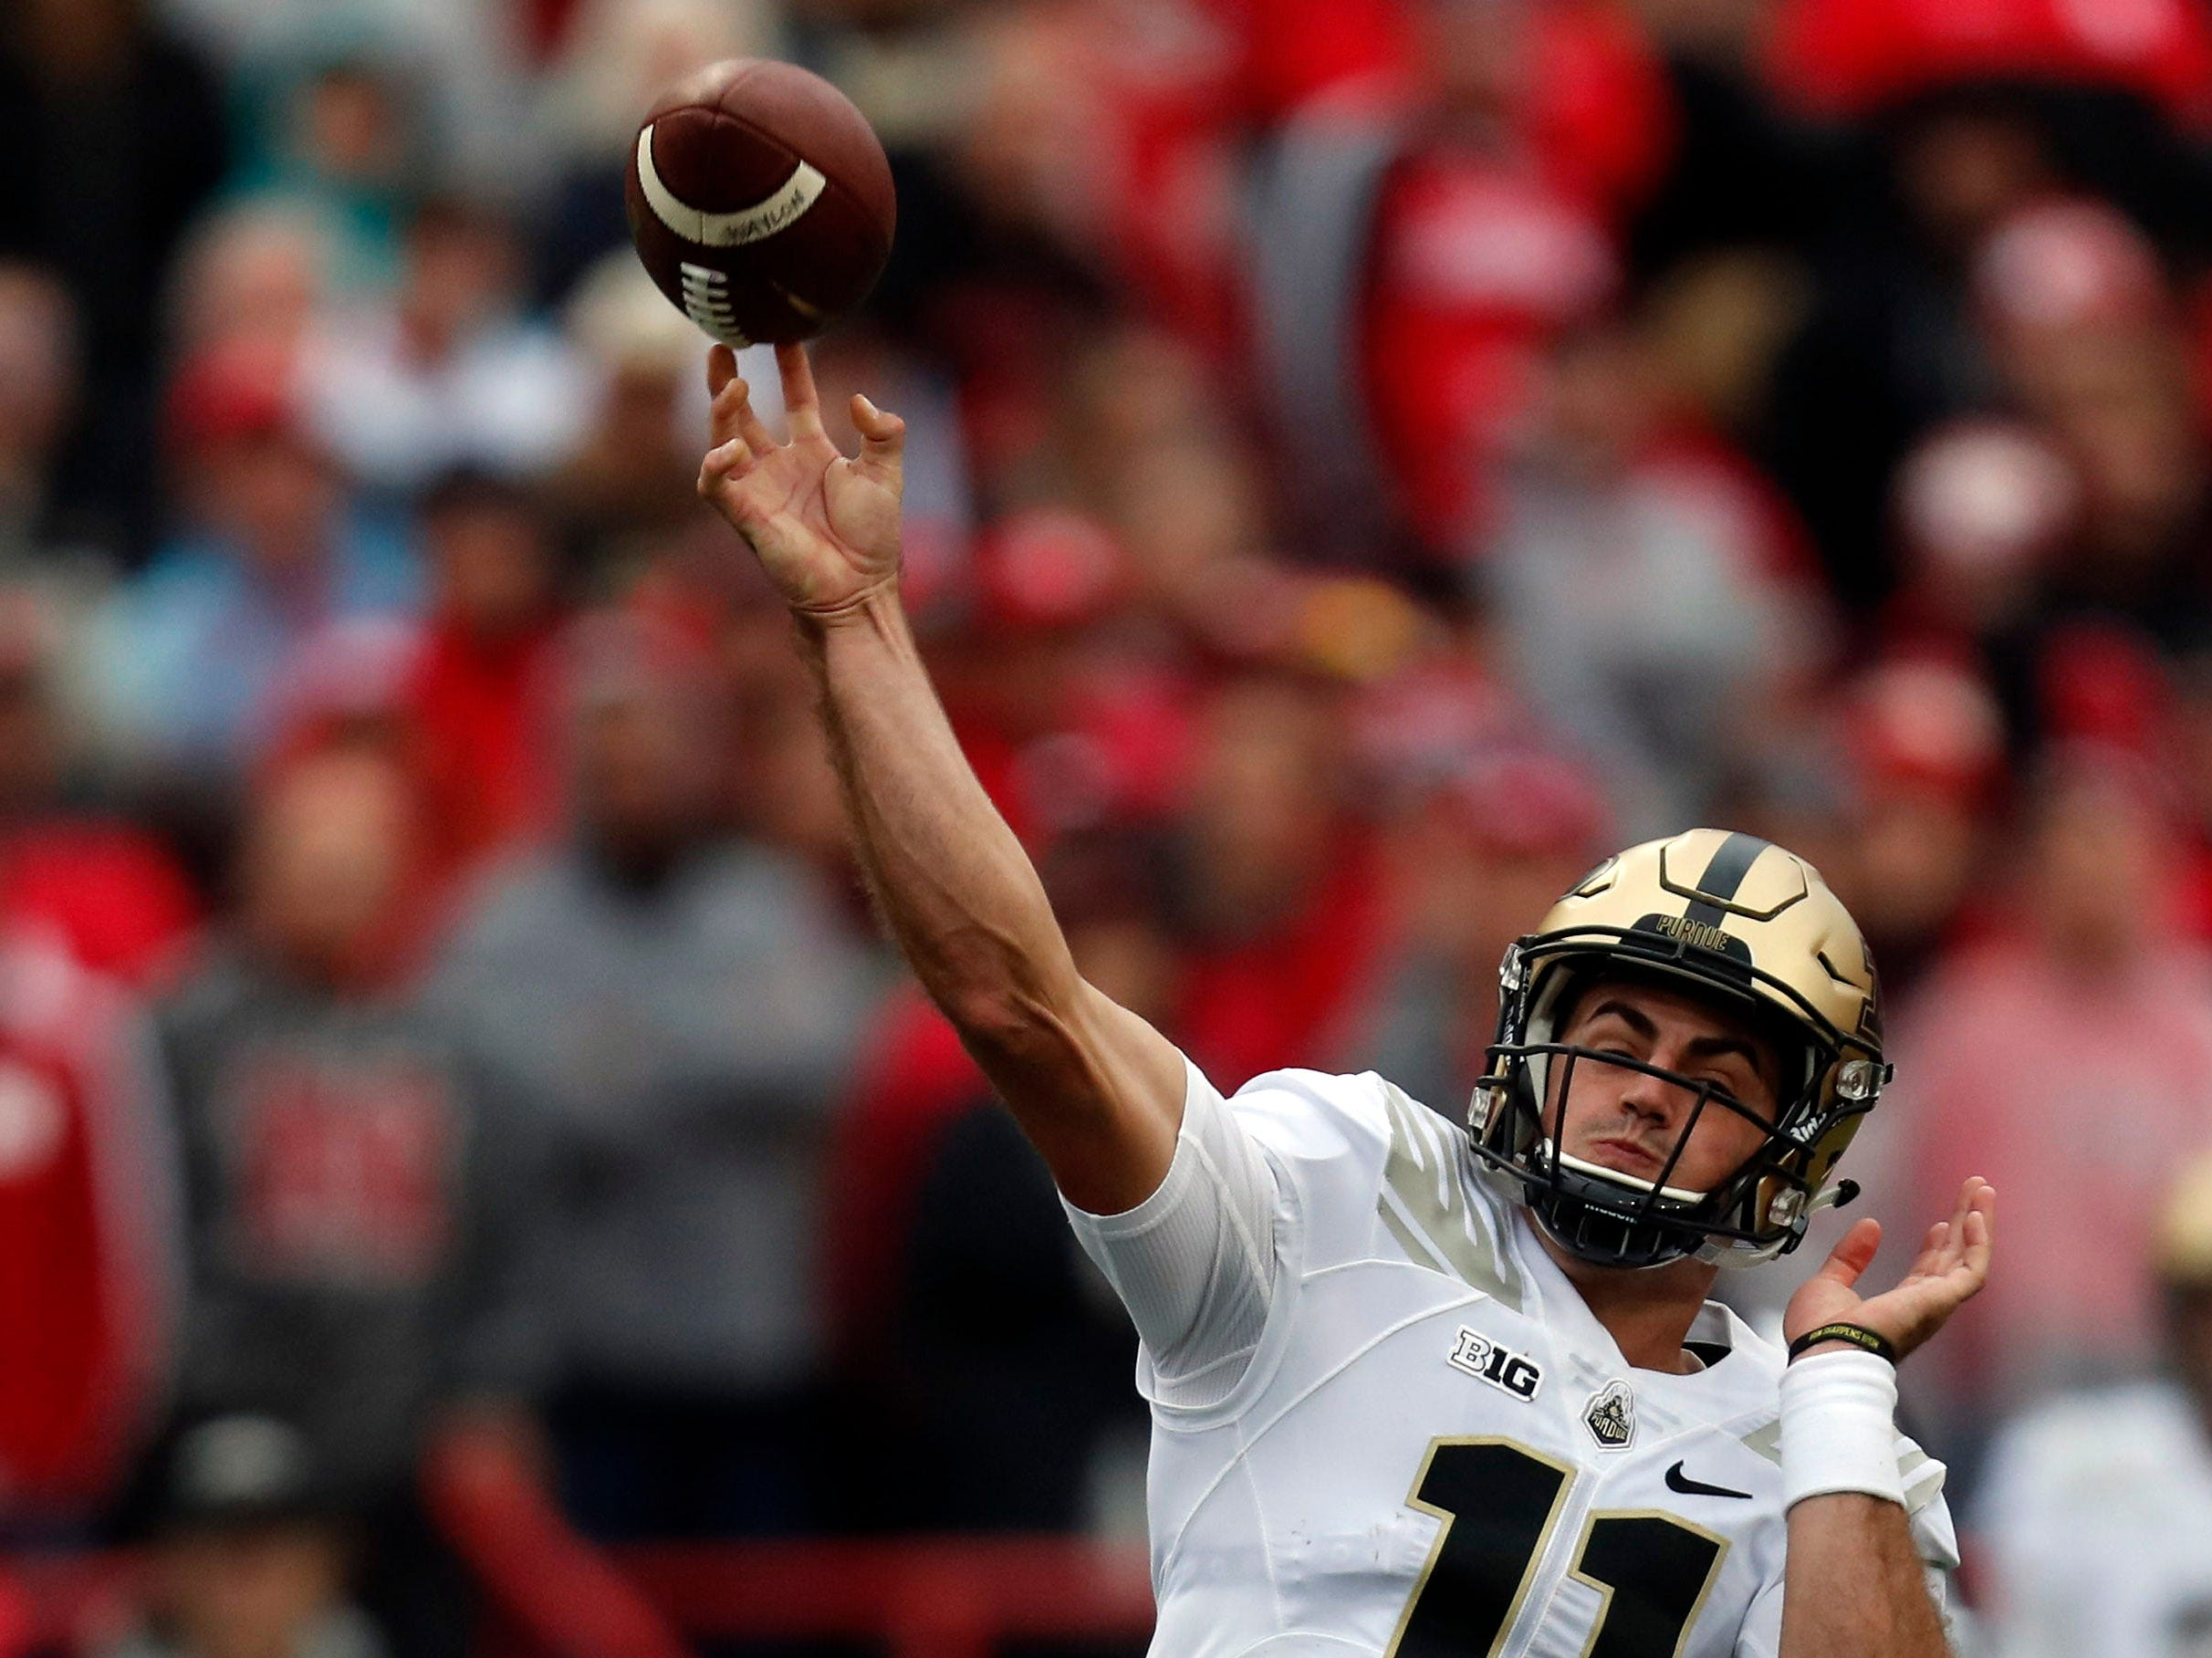 Sep 29, 2018; Lincoln, NE, USA; Purdue Boilermakers quarterback David Blough (11) throws against the Nebraska Cornhuskers in the first half at Memorial Stadium. Mandatory Credit: Bruce Thorson-USA TODAY Sports